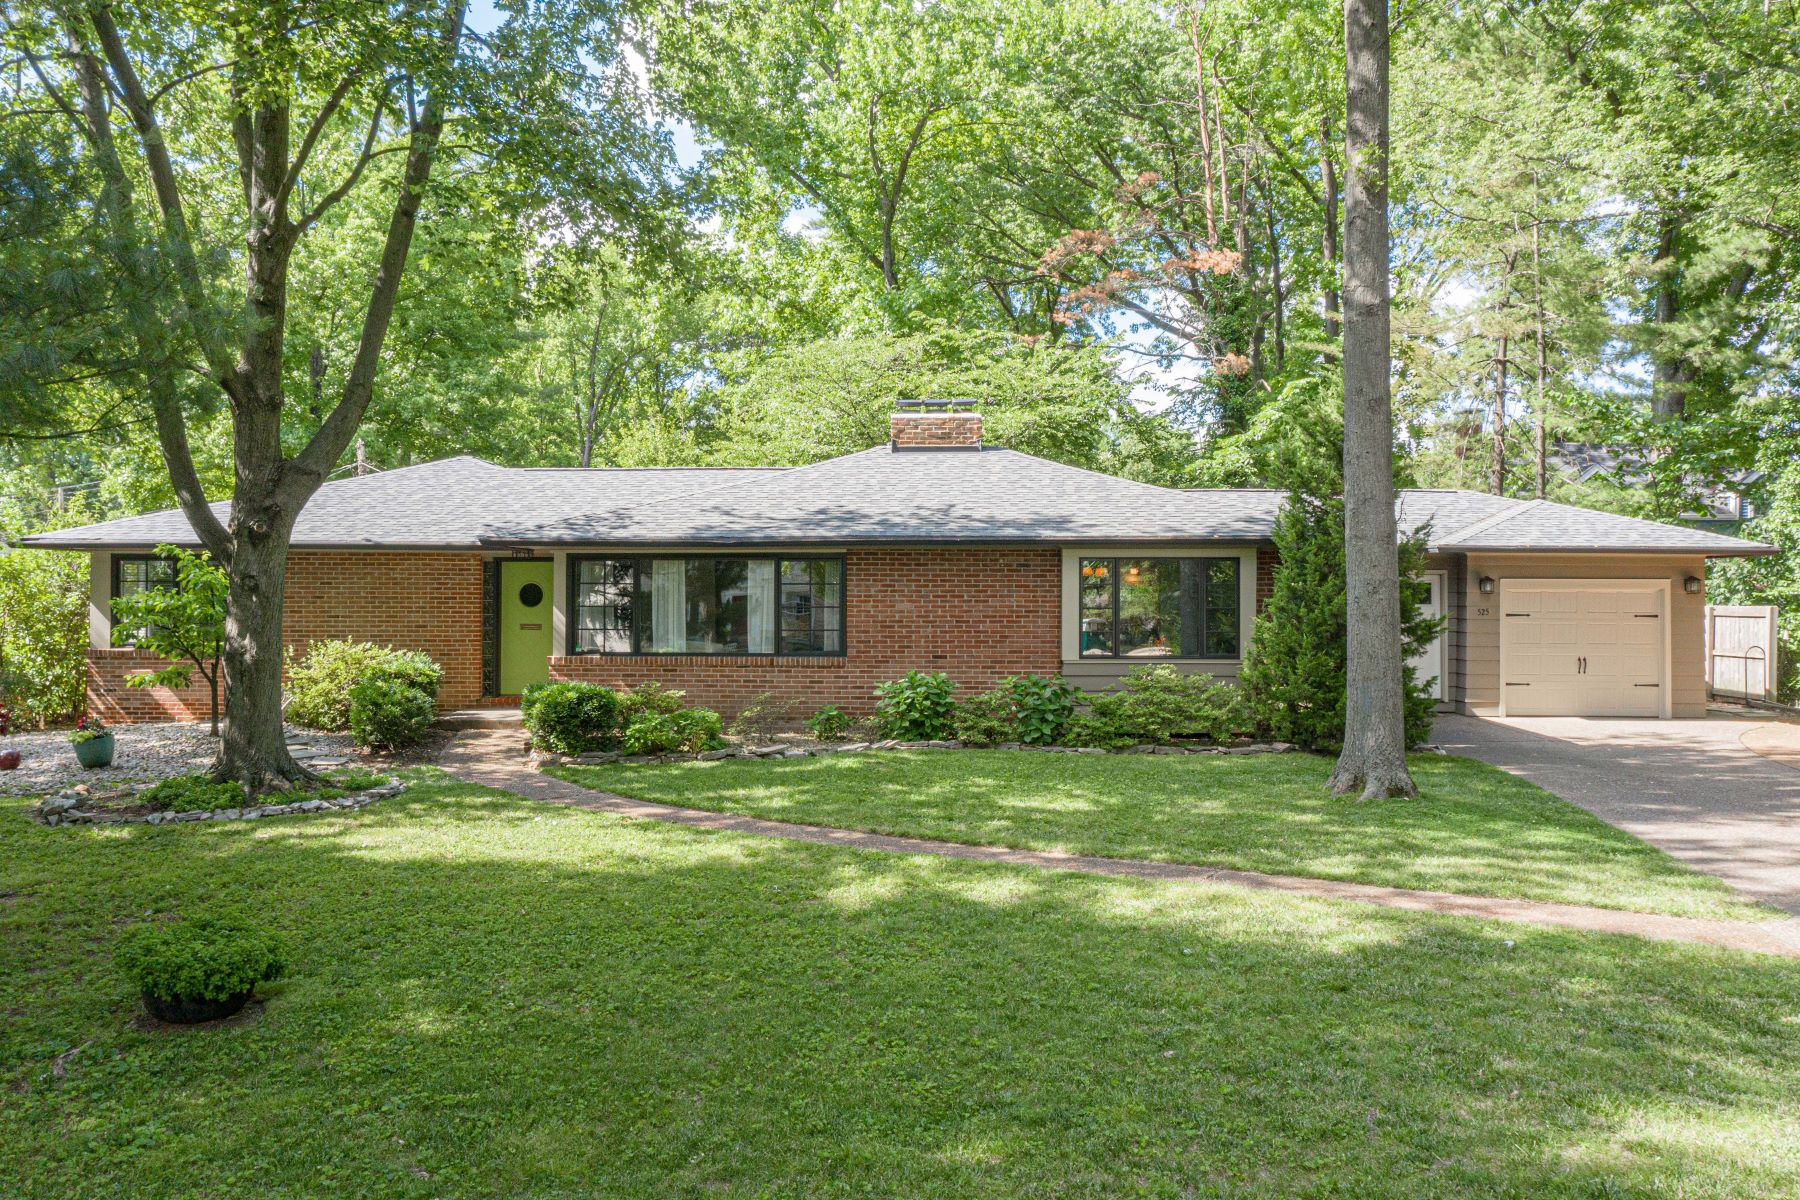 Single Family Homes for Sale at Mid-Century Ranch Near Downtown Kirkwood 525 North Crescent Drive Kirkwood, Missouri 63122 United States